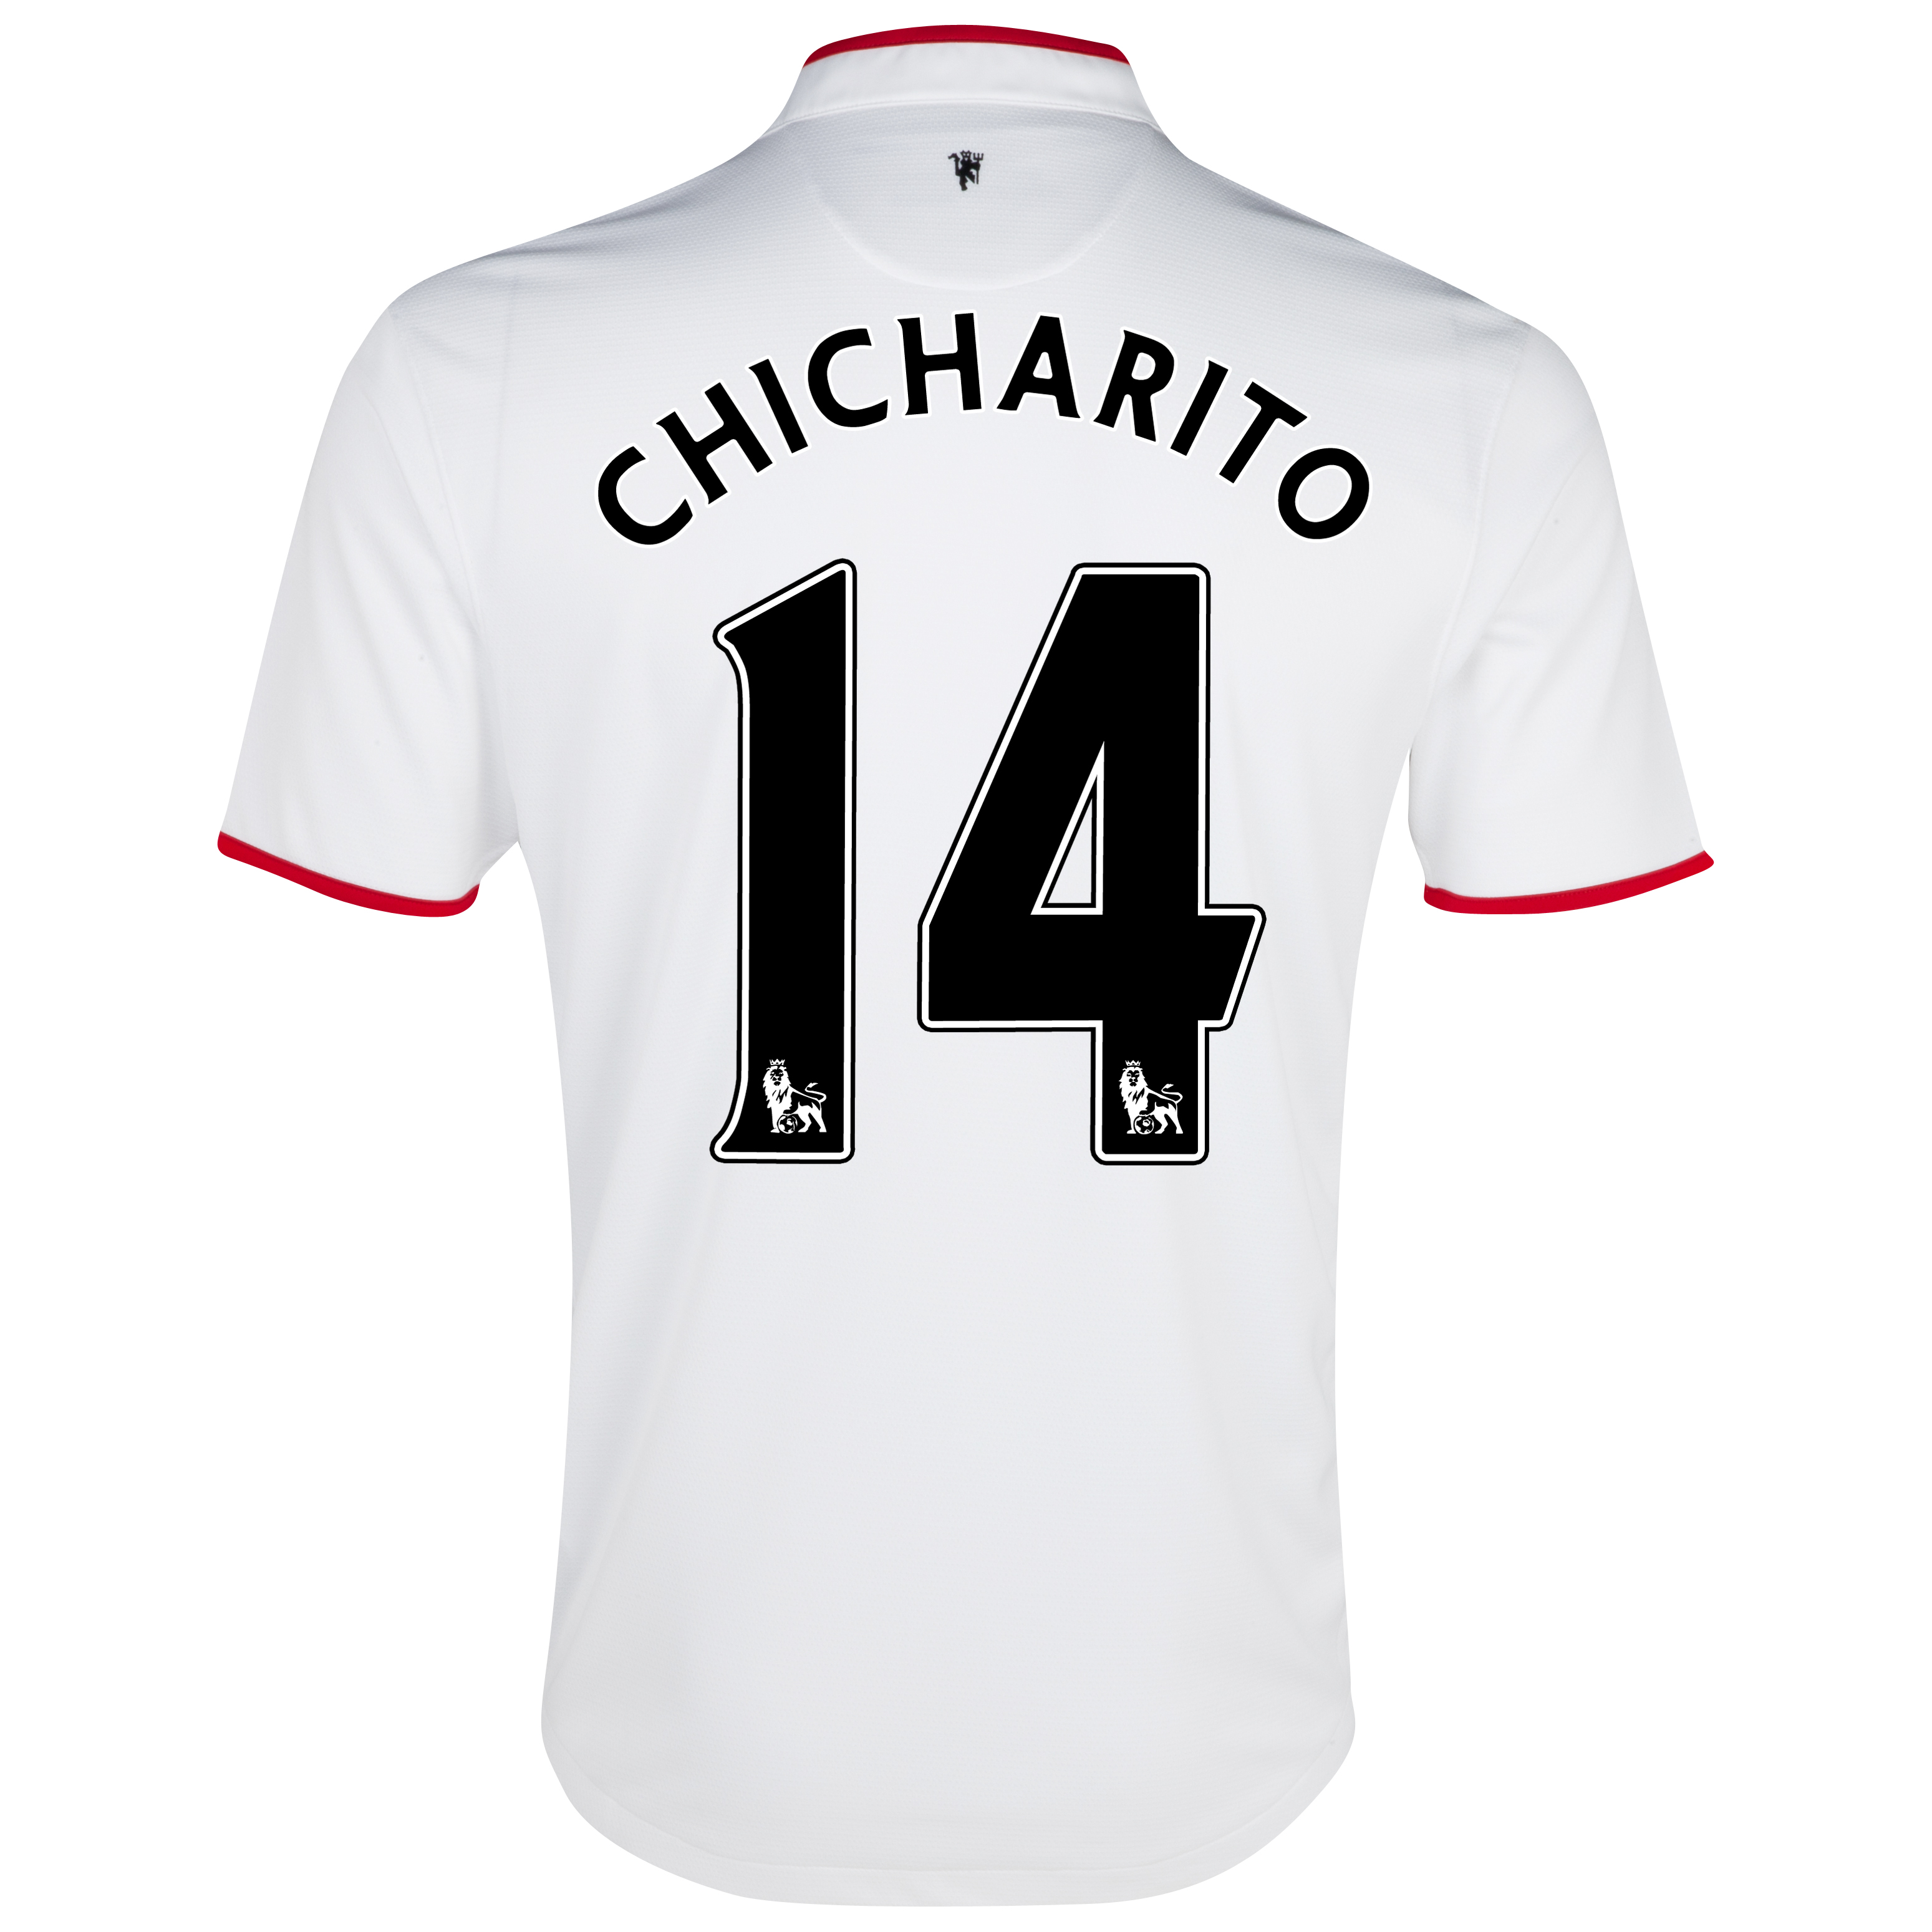 Manchester United Away Shirt 2012/13 with Chicharito 14 printing